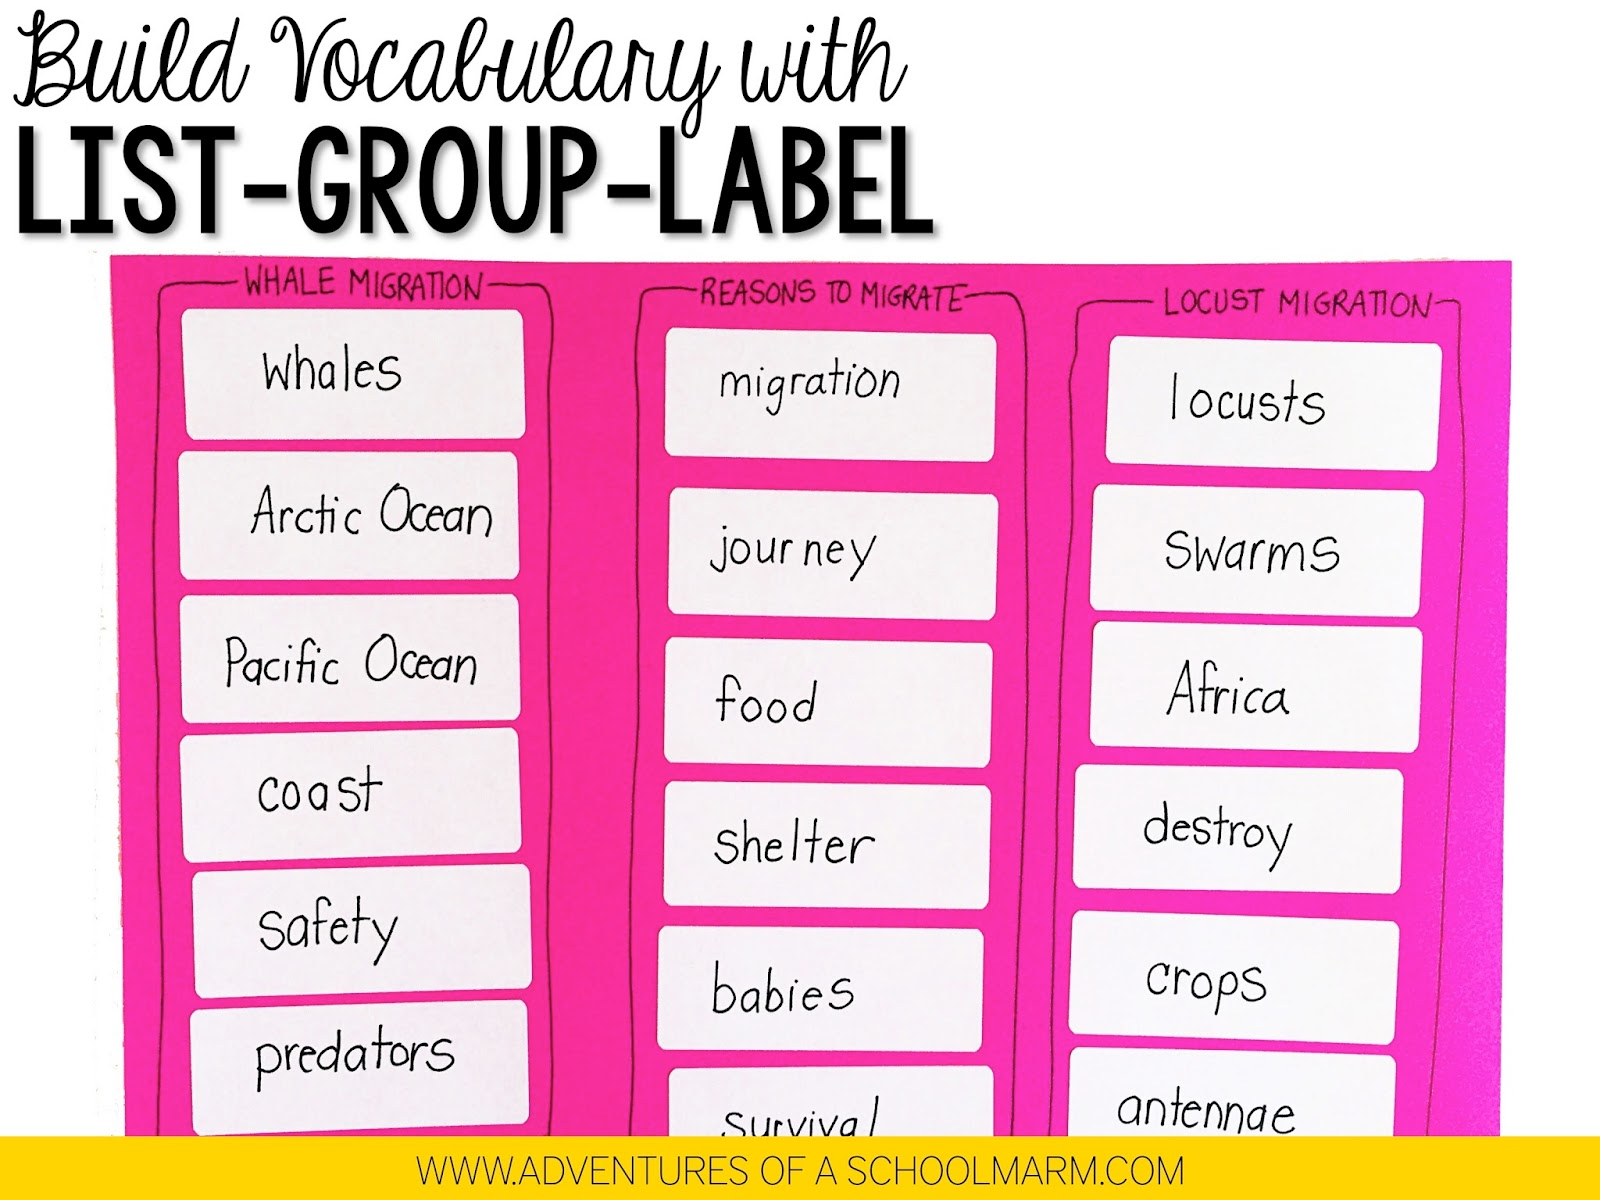 The List Group Label Strategy